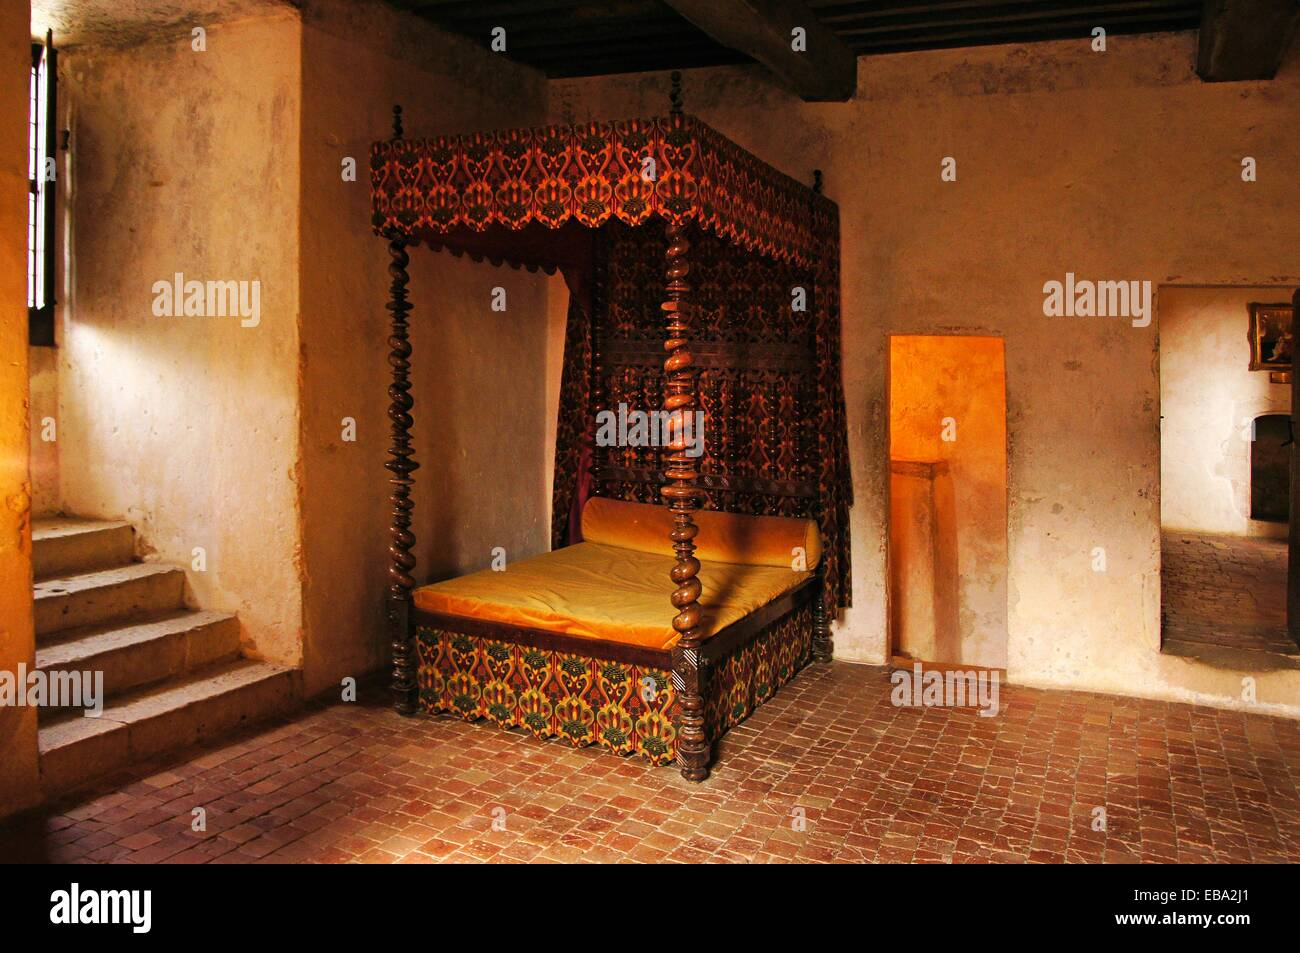 France-Aquitaine-Dordogne- Montaigne´s room in the historical tower (14th century) at Château de Montaigne - Stock Image